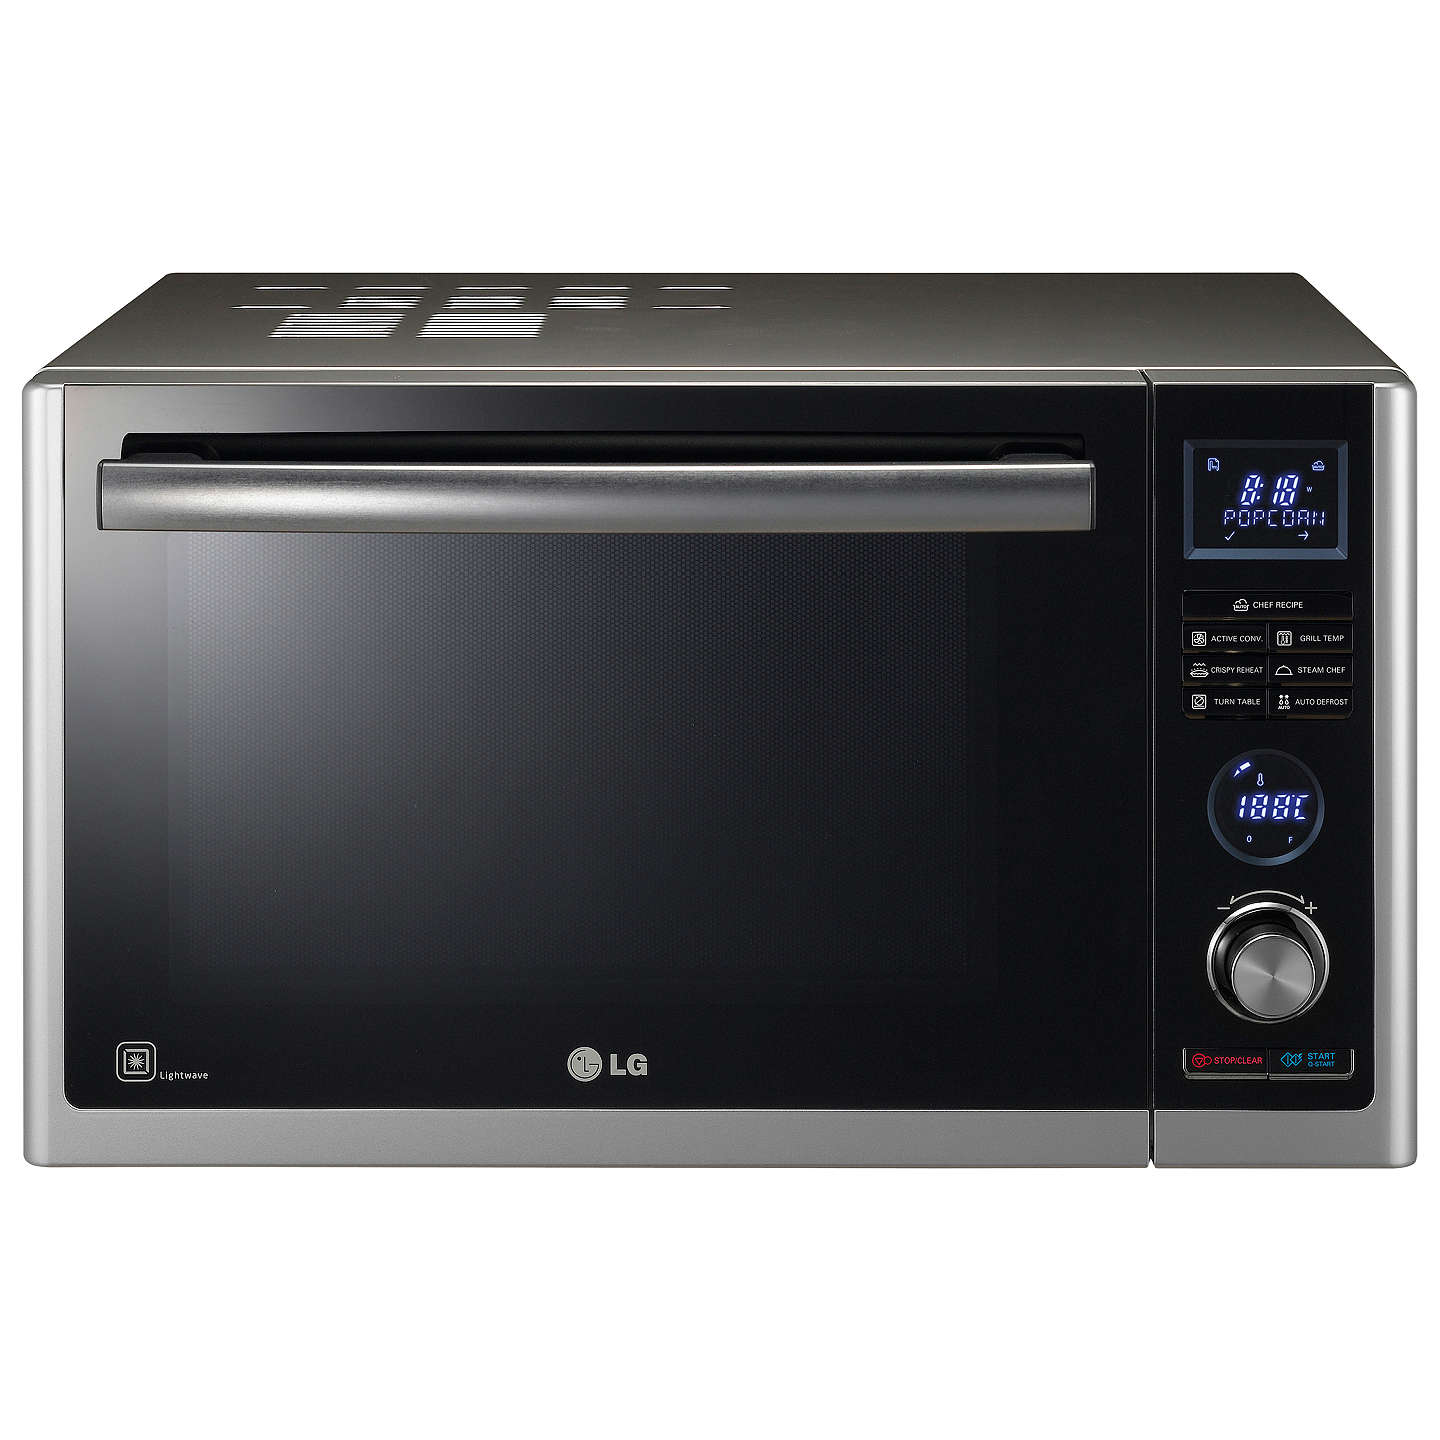 Lg Mj3281bcs Combination Microwave Convection Oven Black Stainless Steel Online At Johnlewis